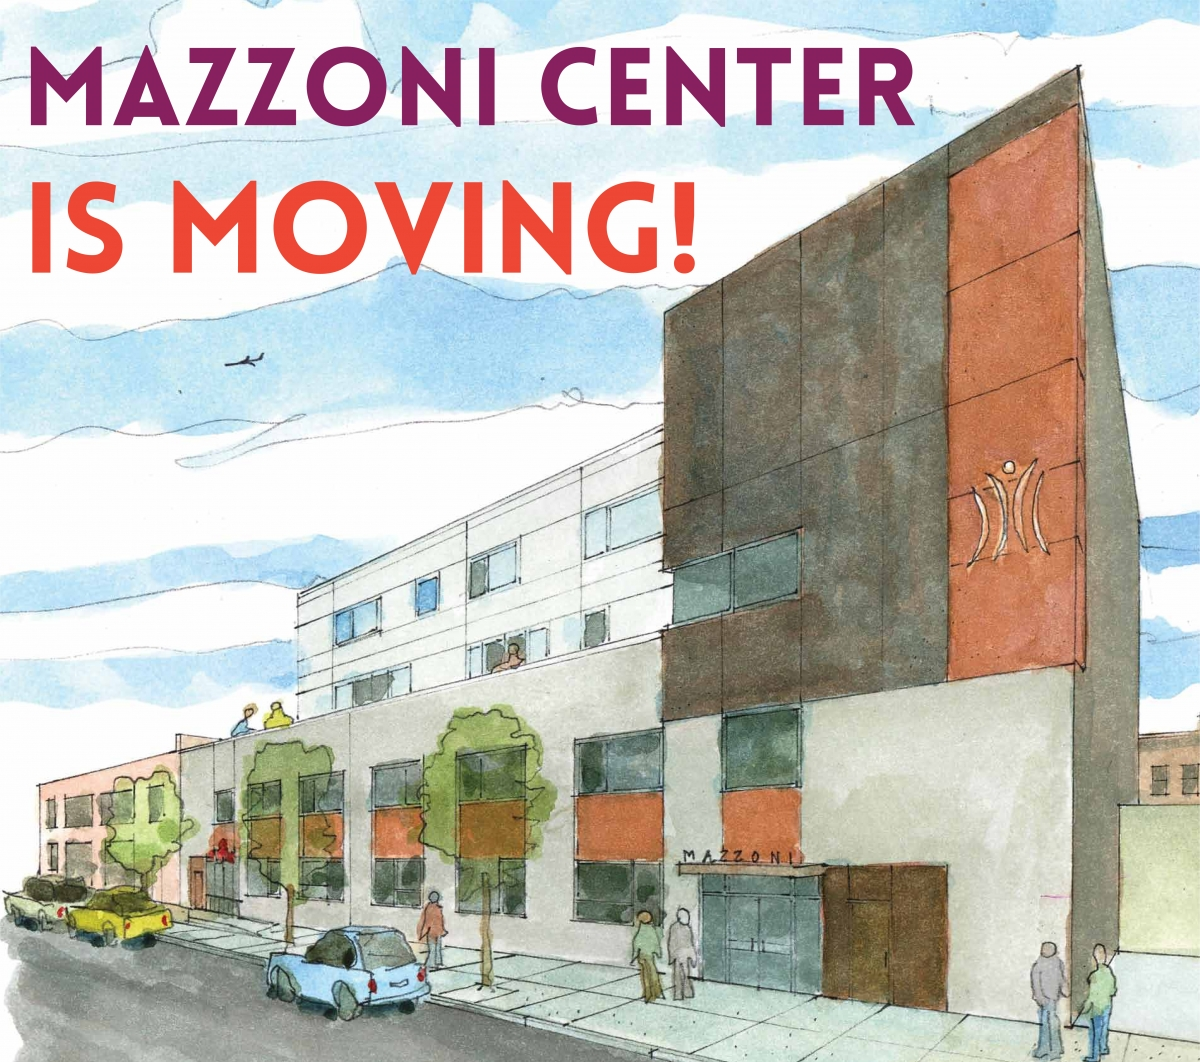 Mazzoni Center is Moving